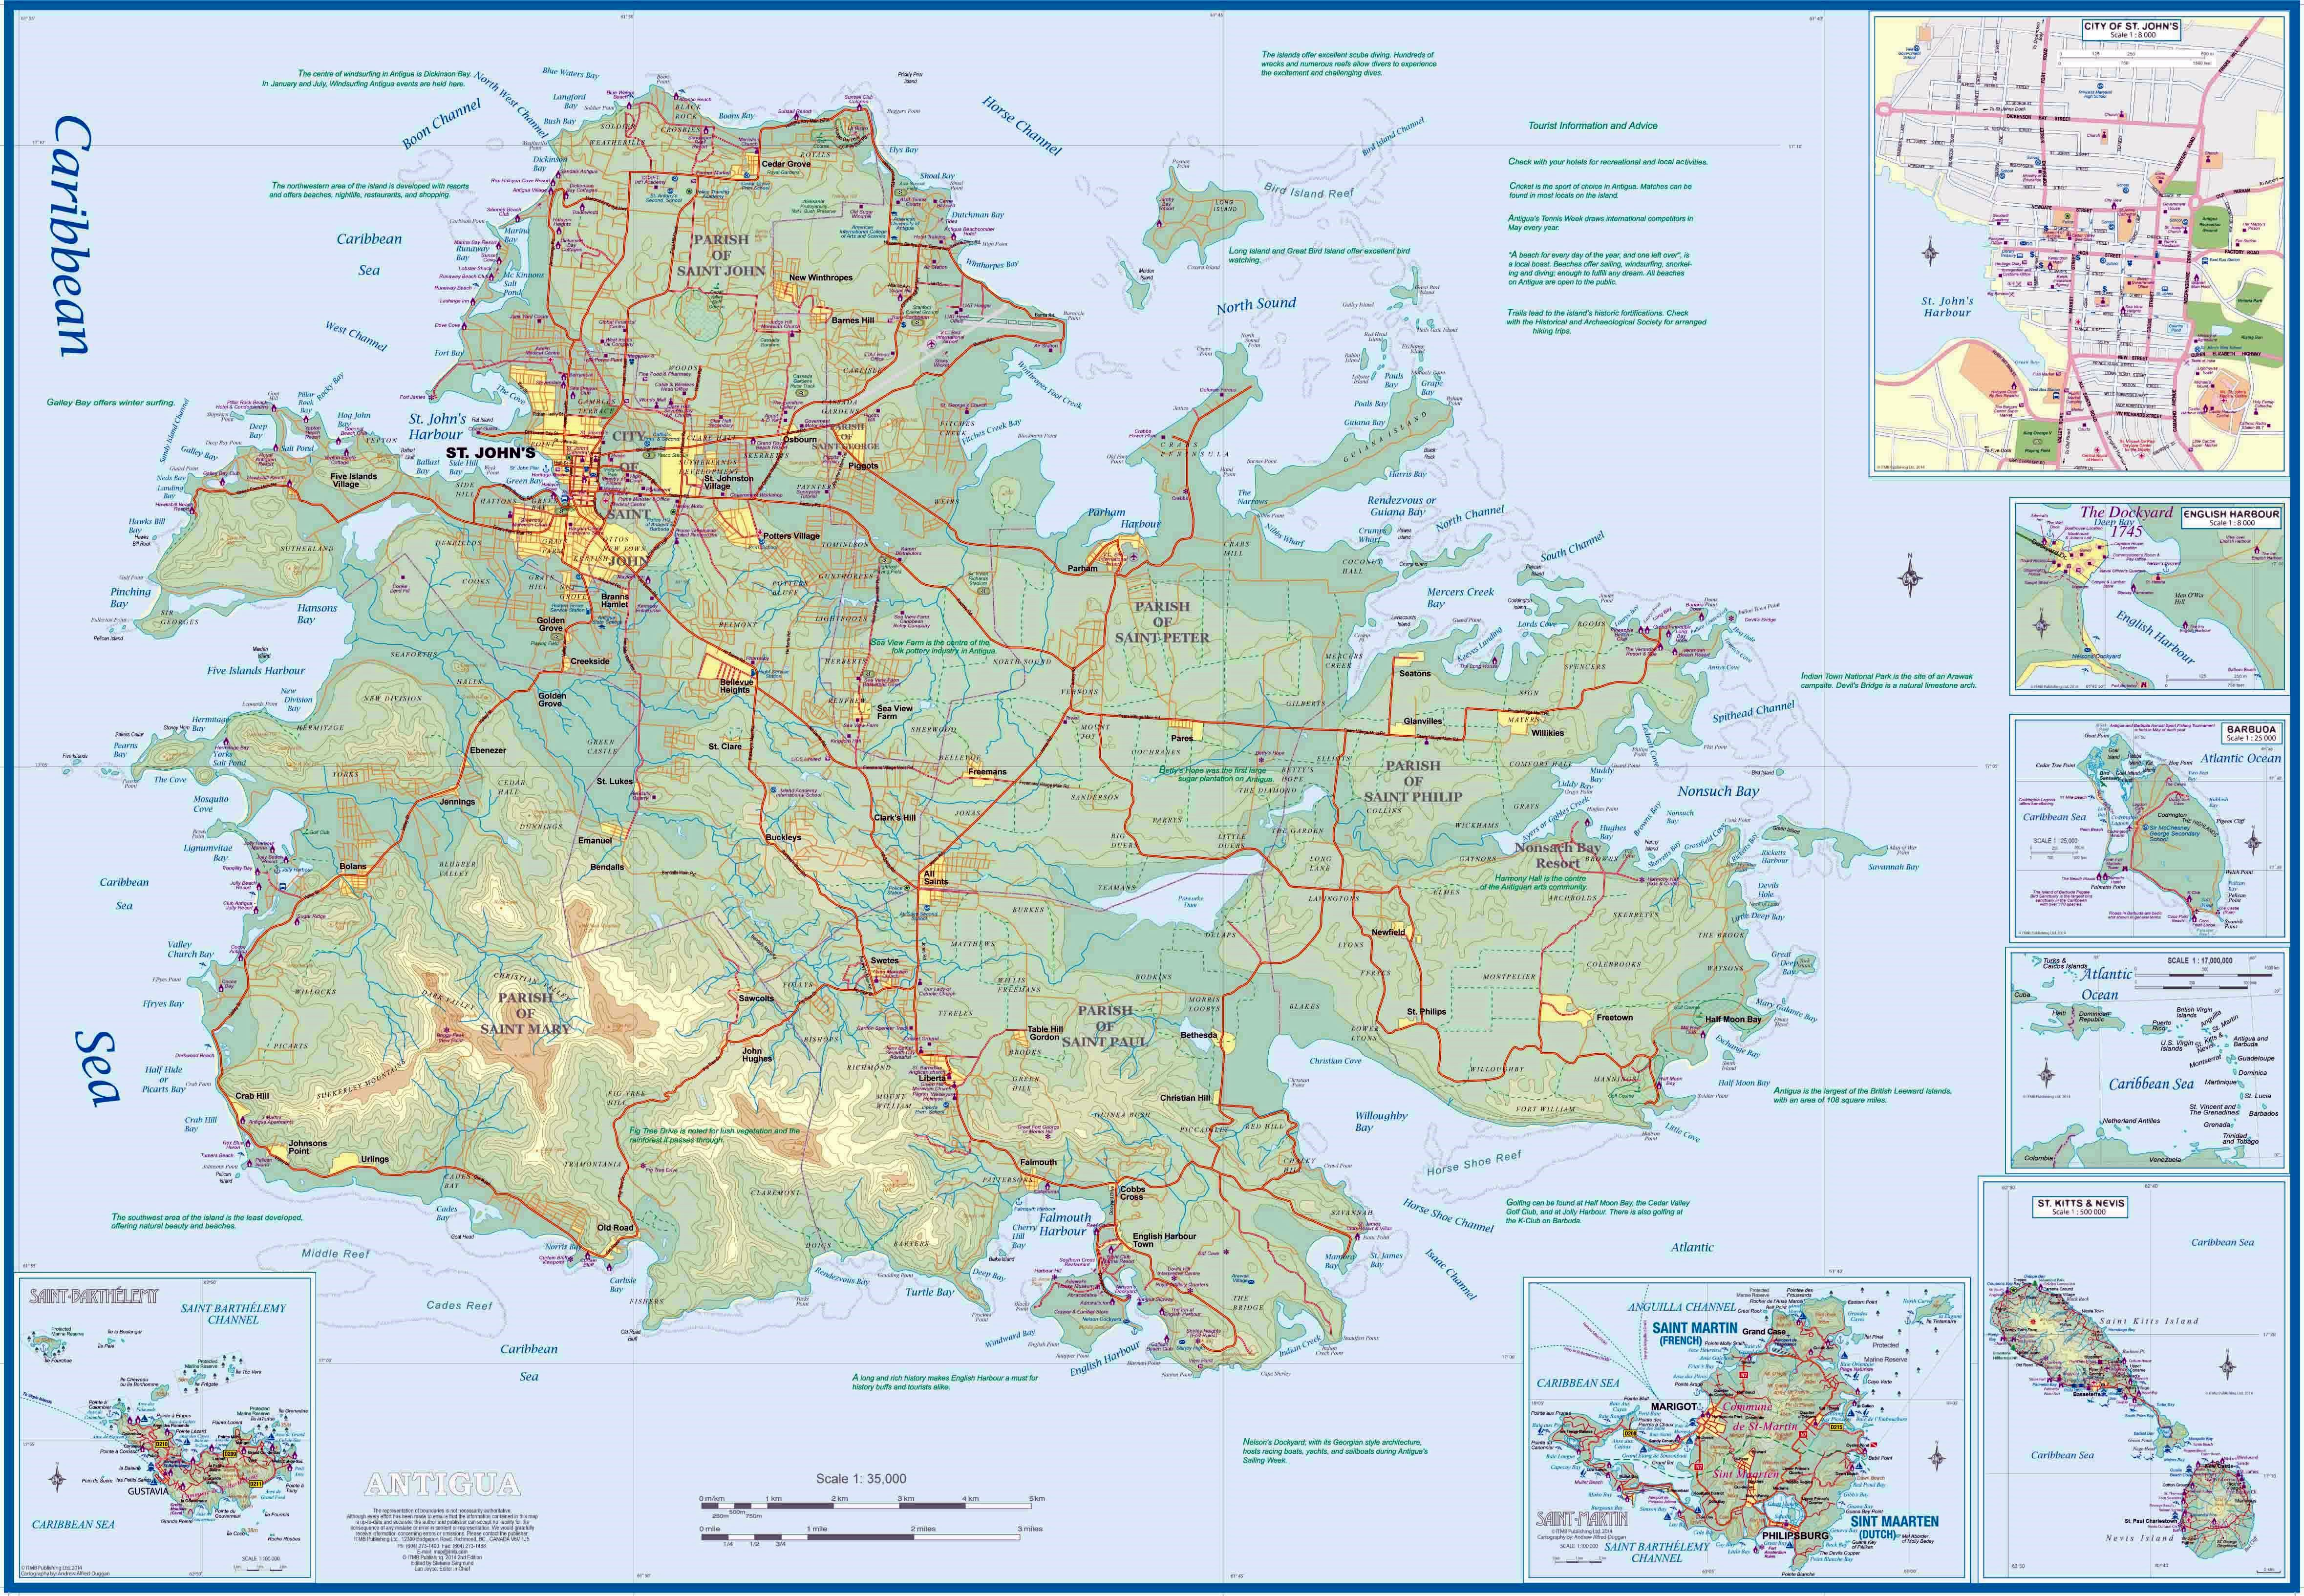 Antigua Island Map Large Antigua Island Maps for Free Download and Print | High